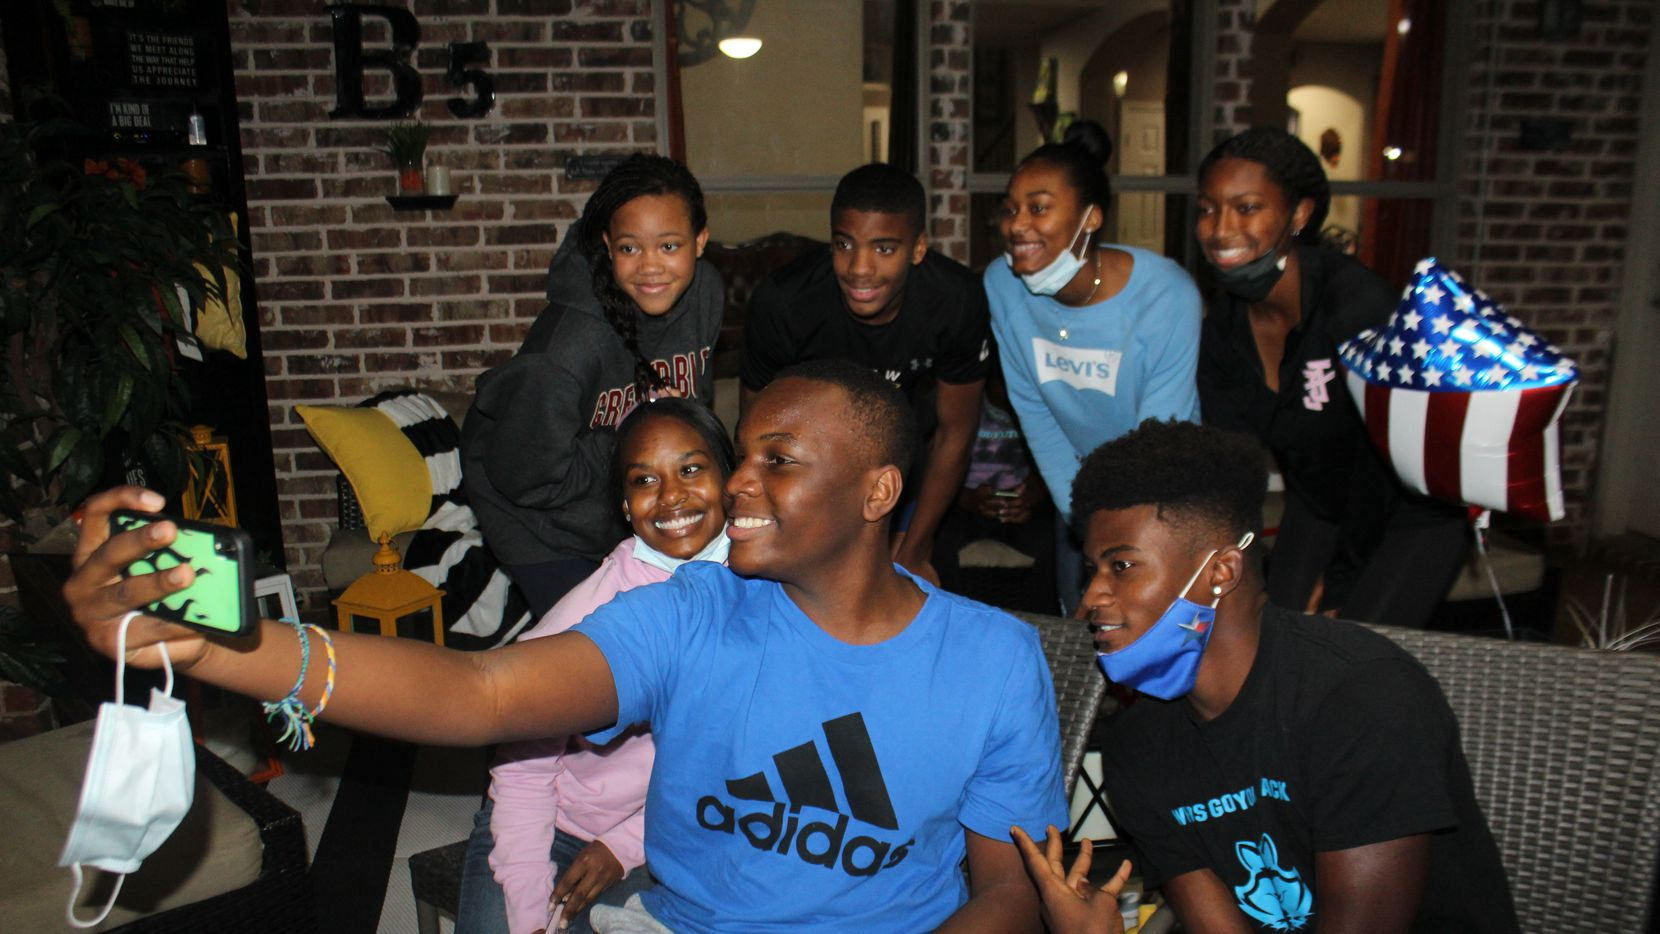 Teens attended an Election Night watch party in Tiffany Bozeman's Frisco backyard on Tuesday, Nov. 3, 2020.